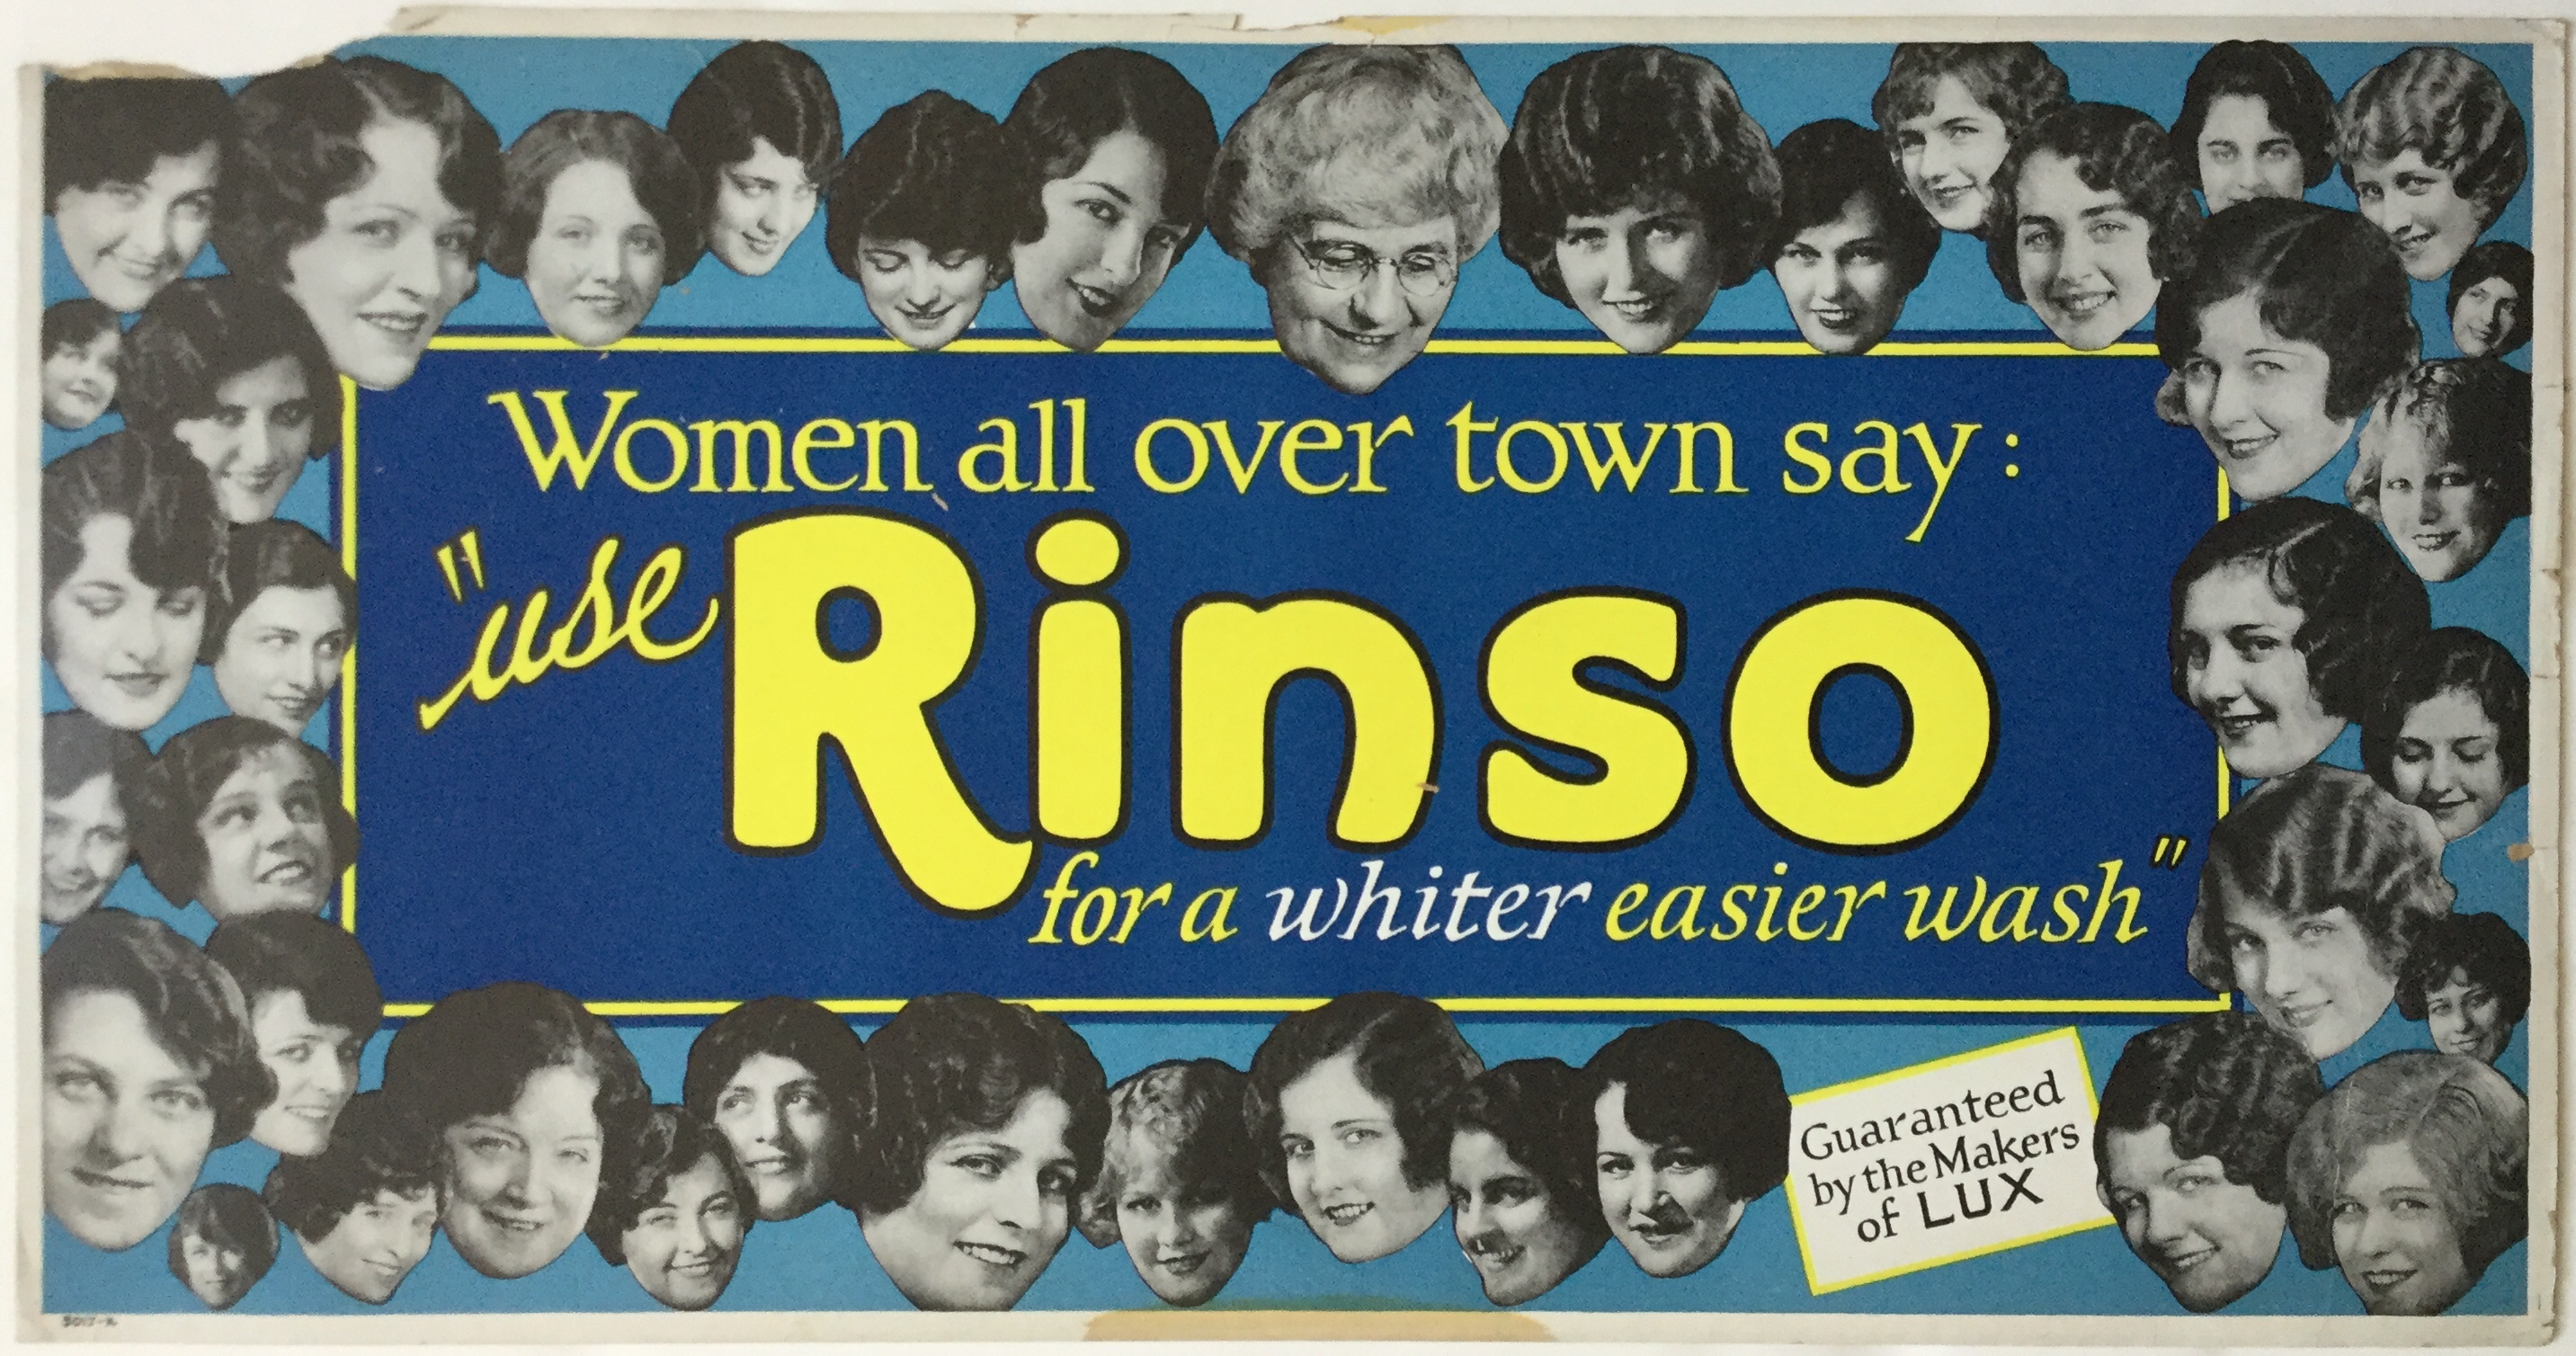 J397RINSO - WOMEN ALL OVER TOWN SAY RINSO FOR A WHITER, EASIER WASH